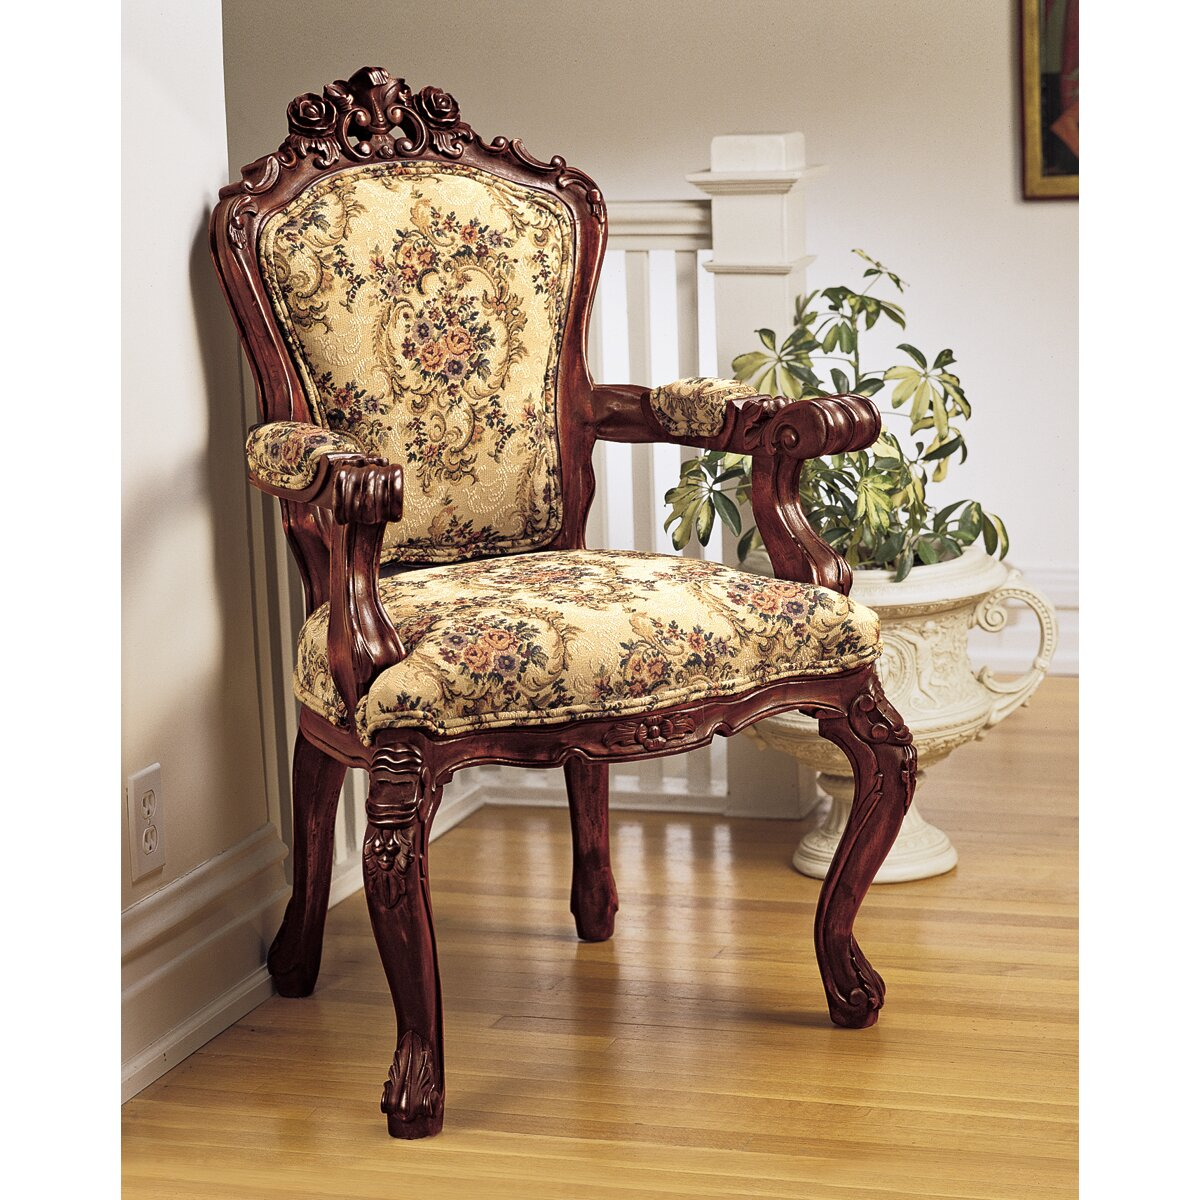 Design toscano carved rocaille fabric arm chair reviews for Wooden armchair designs